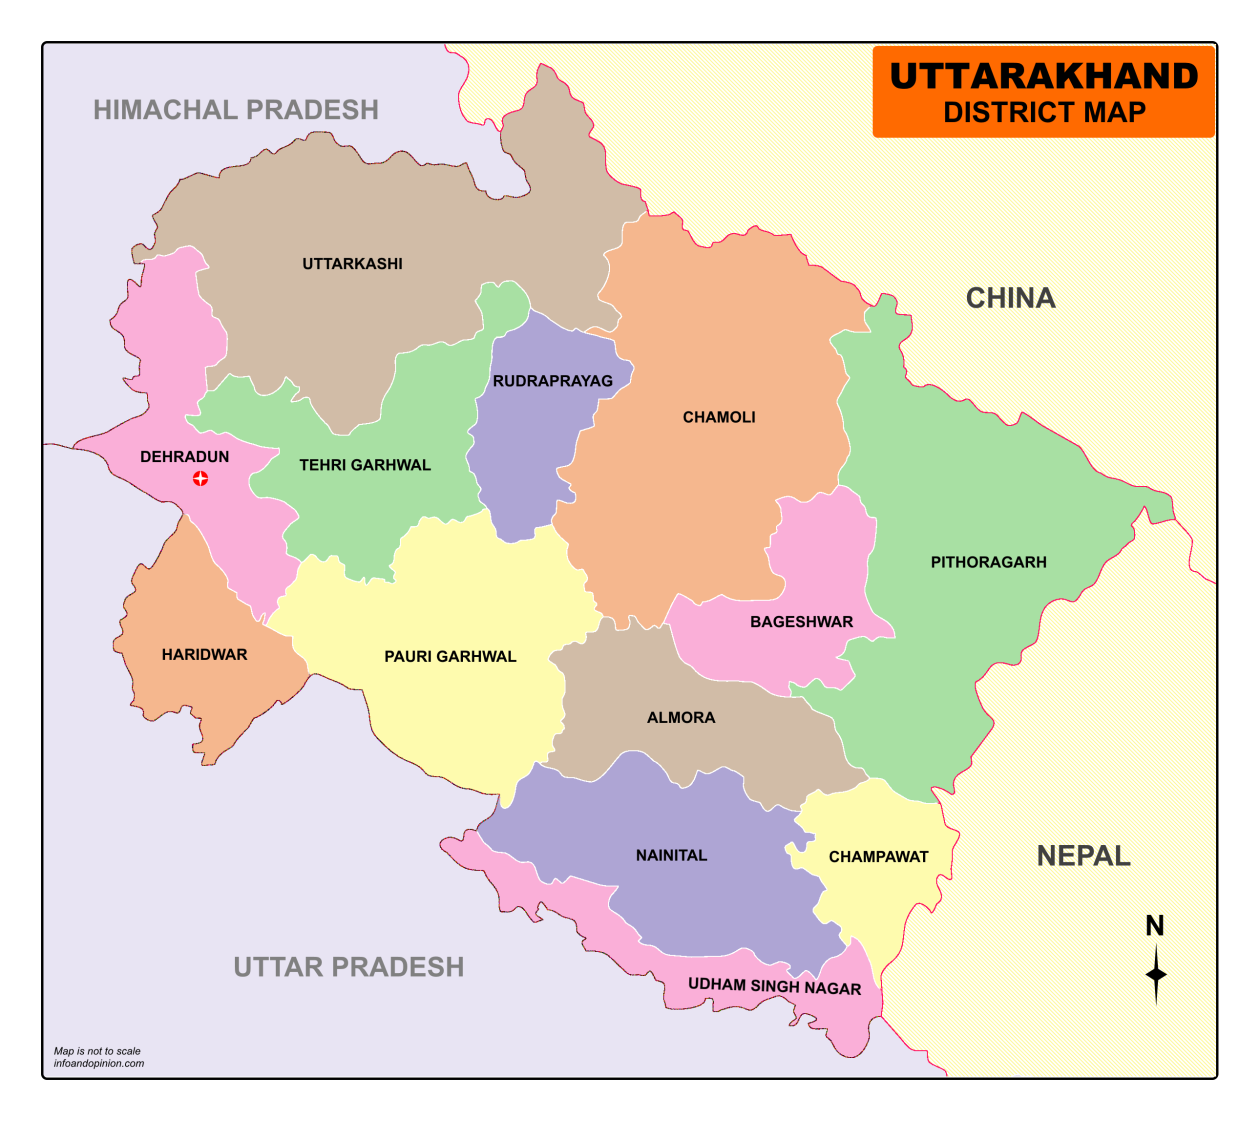 Uttarakhand: An Introduction